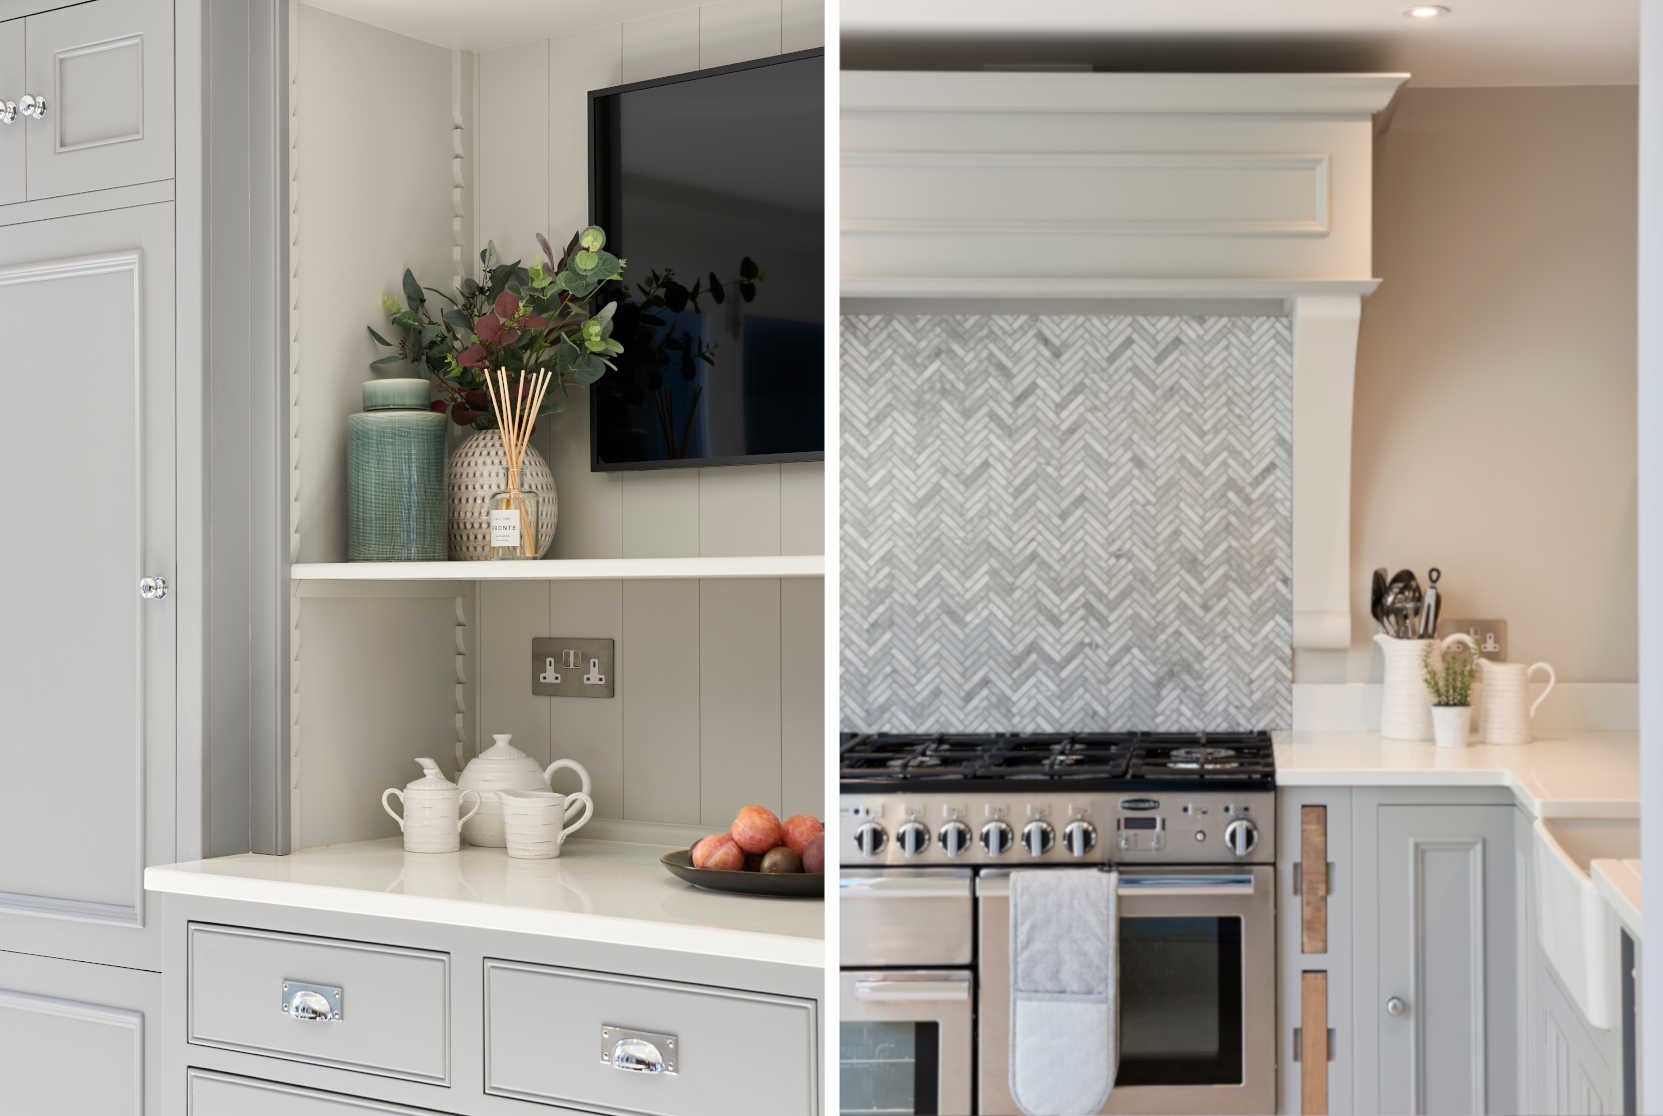 Herringbone tiling & foliage in Kitchen - Interior Design